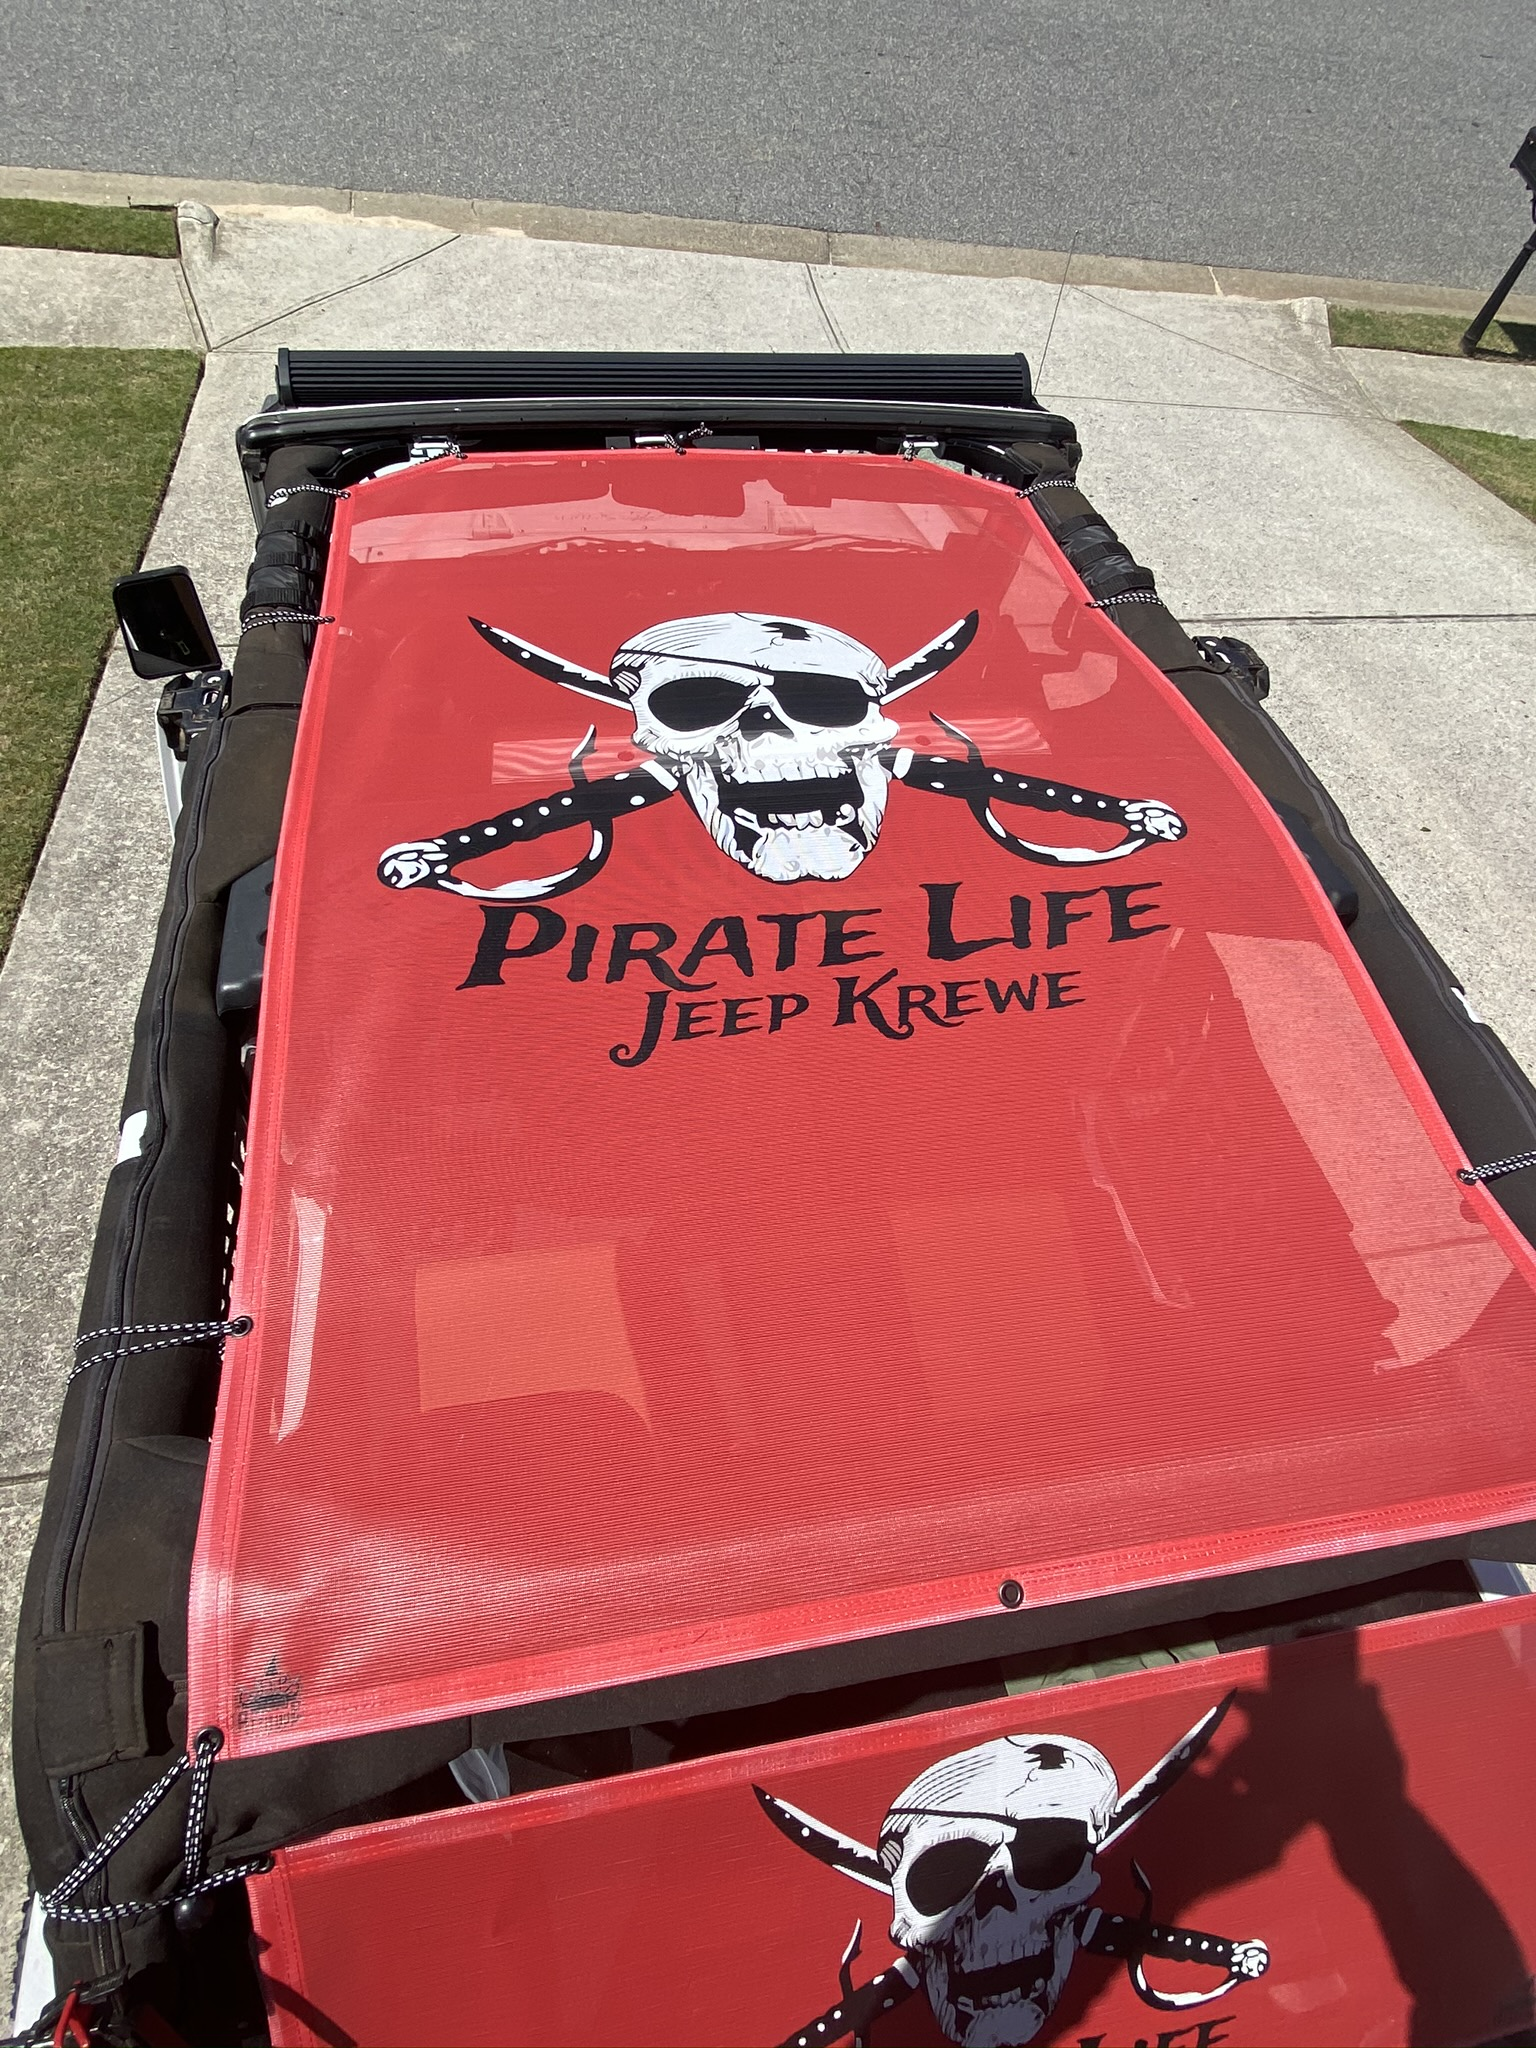 Pirate Life Jeep Krewe